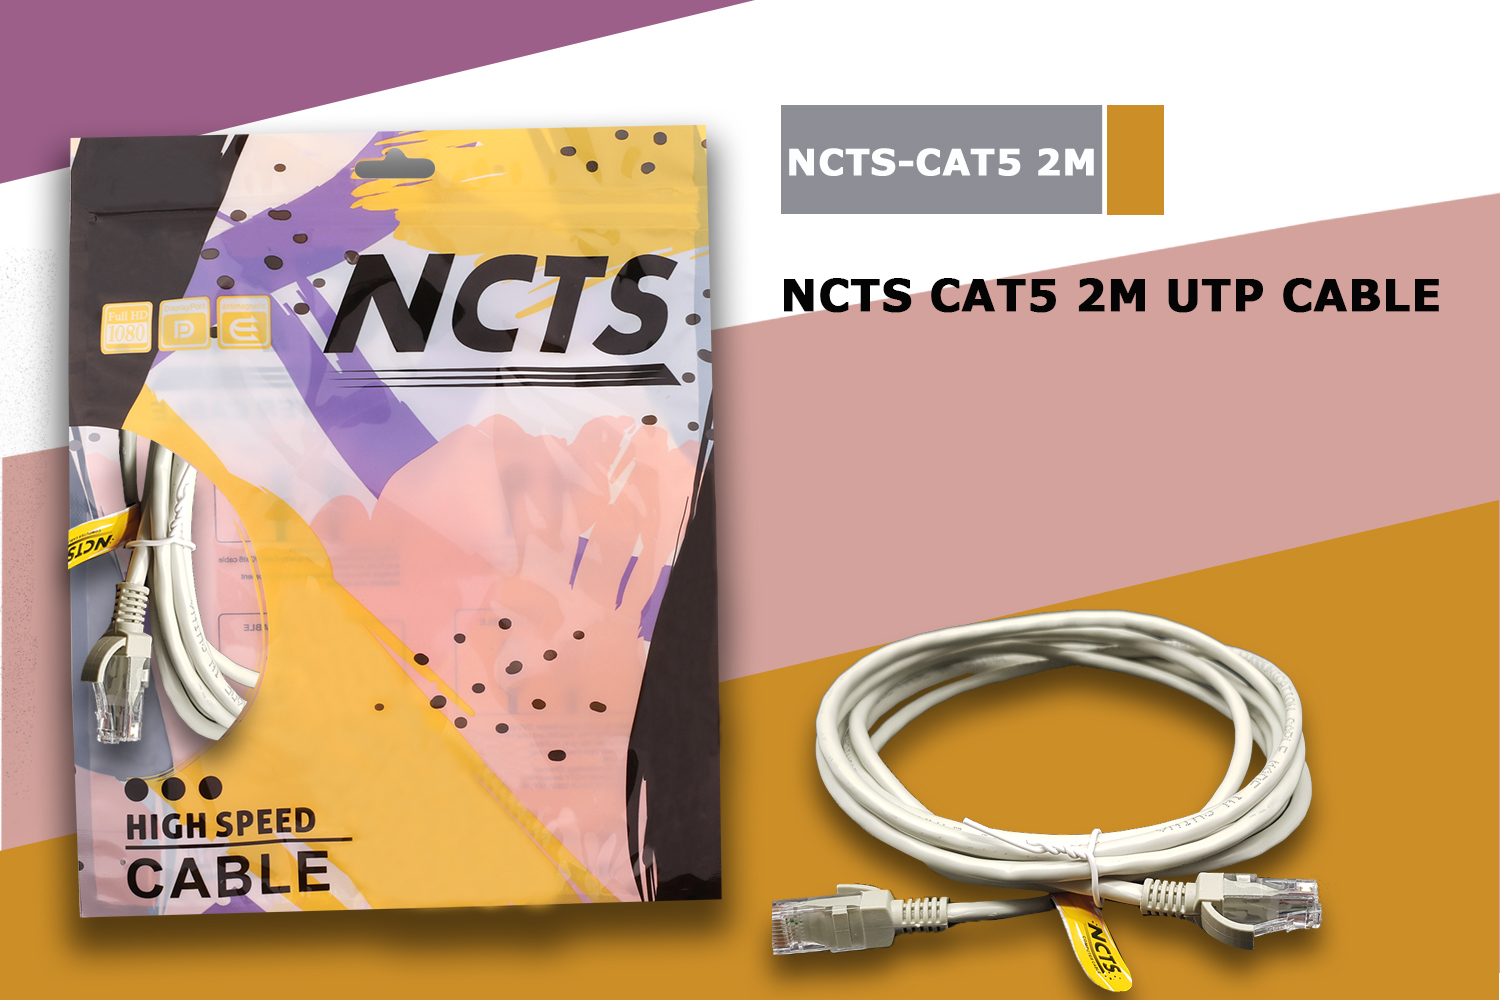 NCTS CAT5 UTP 2M,24AWG 4PR,7*8*0.12mm CCA